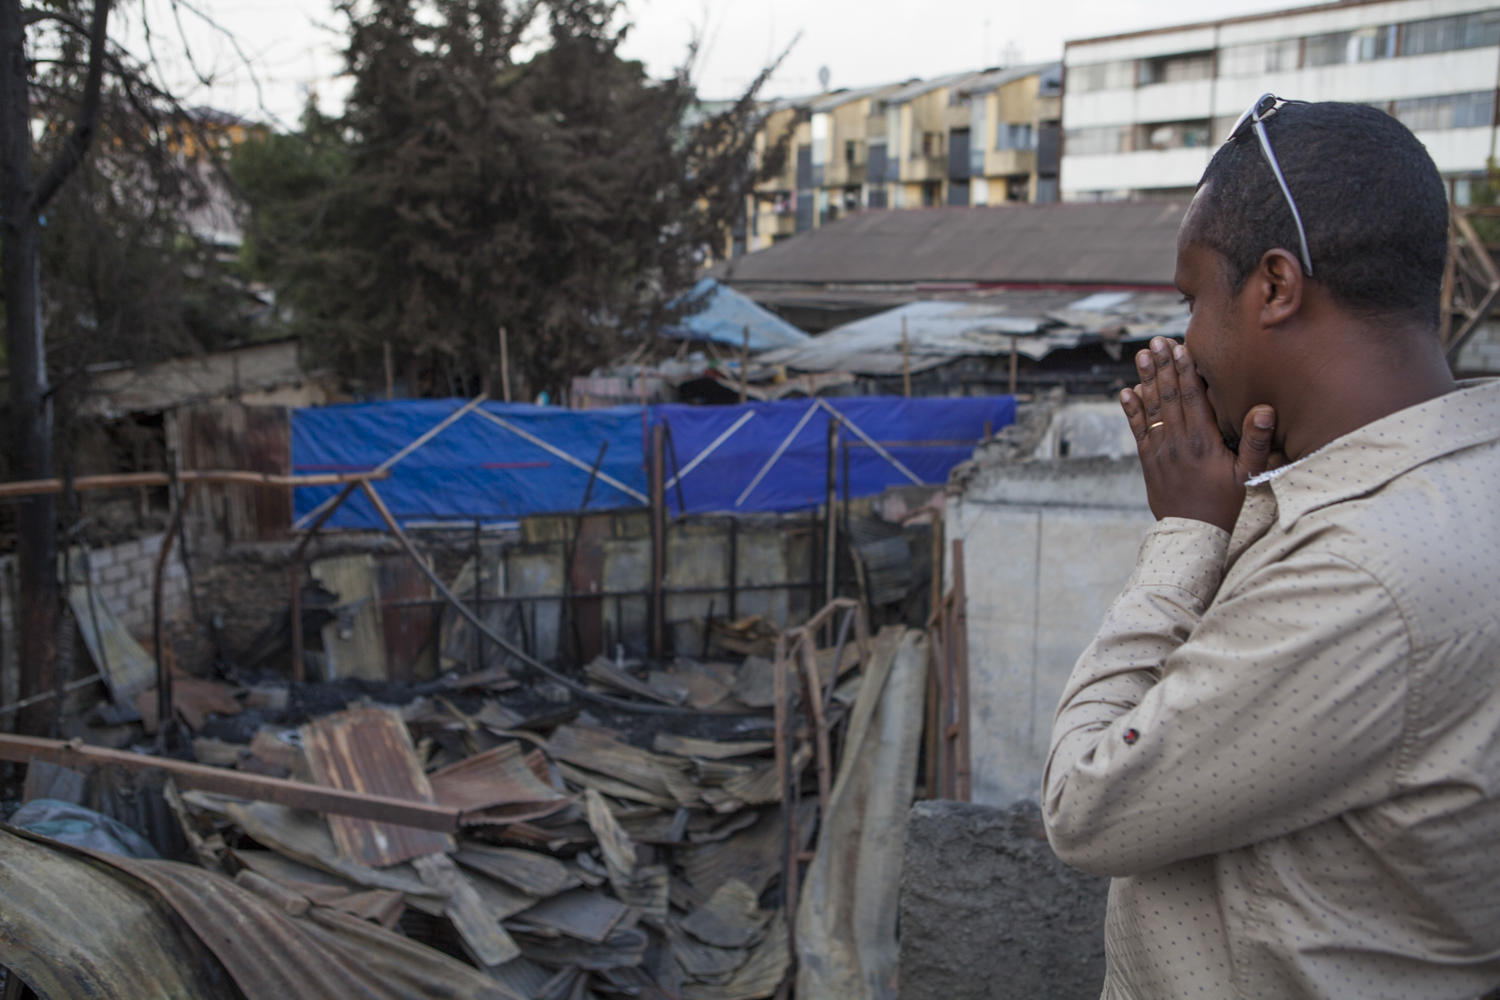 Misale Legesse, an Ethiopian jazz drummer, is pictured on 16 Feb 2015 surveying the damage from the fire that ripped through Jazzamba, a jazz club in Addis Ababa, in mid Jan 2015. The club was inside the oldest hotel in the country, Taitu, which was established in the early 20th century by Empress Taitu of Ethiopia. AFP Photo / Zacharias Abubeker